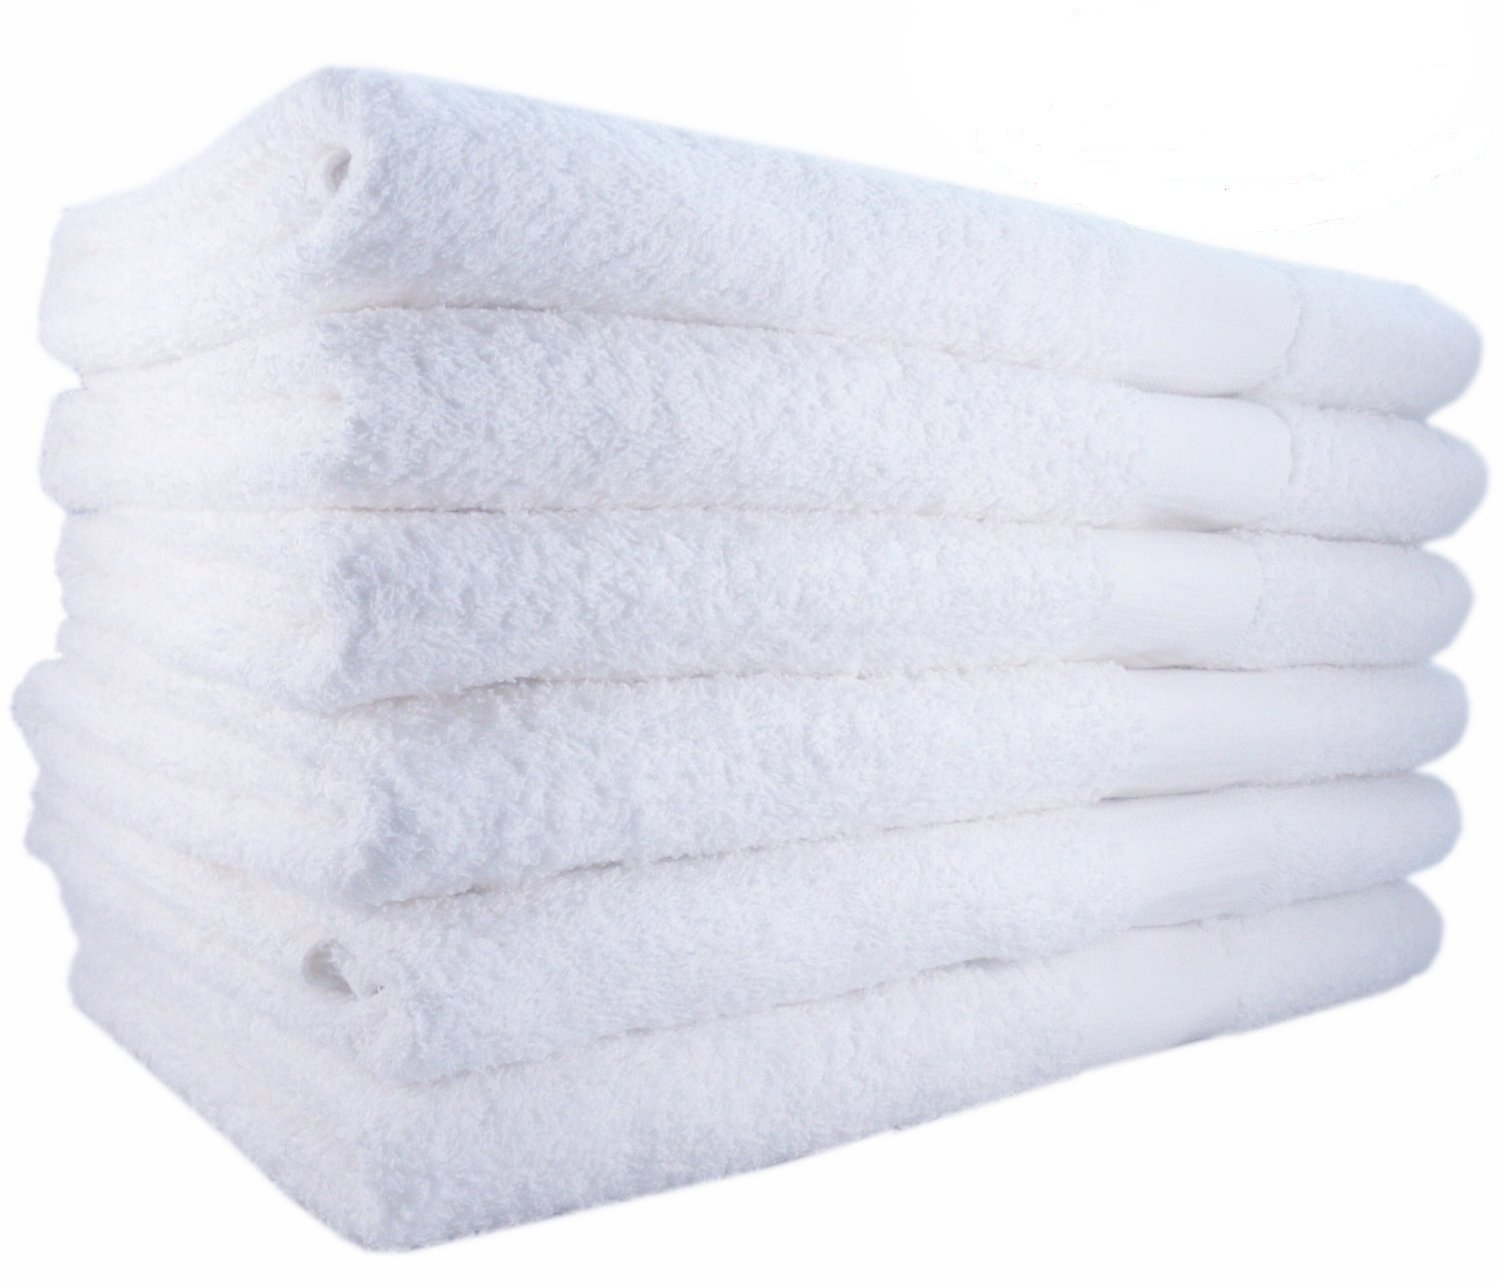 MIMAATEX Bath Towels 6 Pack-White 100% Cotton 24x50 Inch Bath Towels